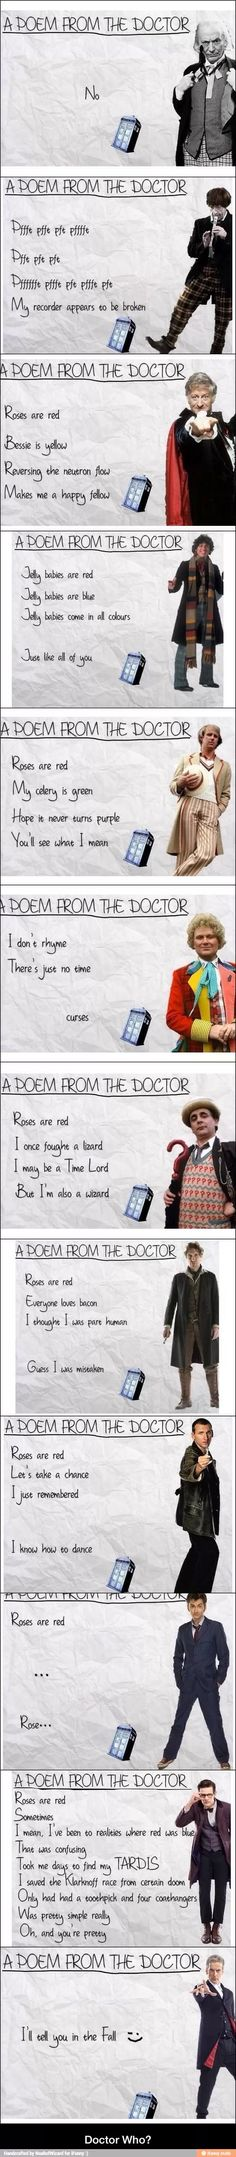 Poems by the doctors - Doctor Who<<<11's is so true tho, he's so geeky and nervous and hyper and jumpy, it explains him so perfectly.